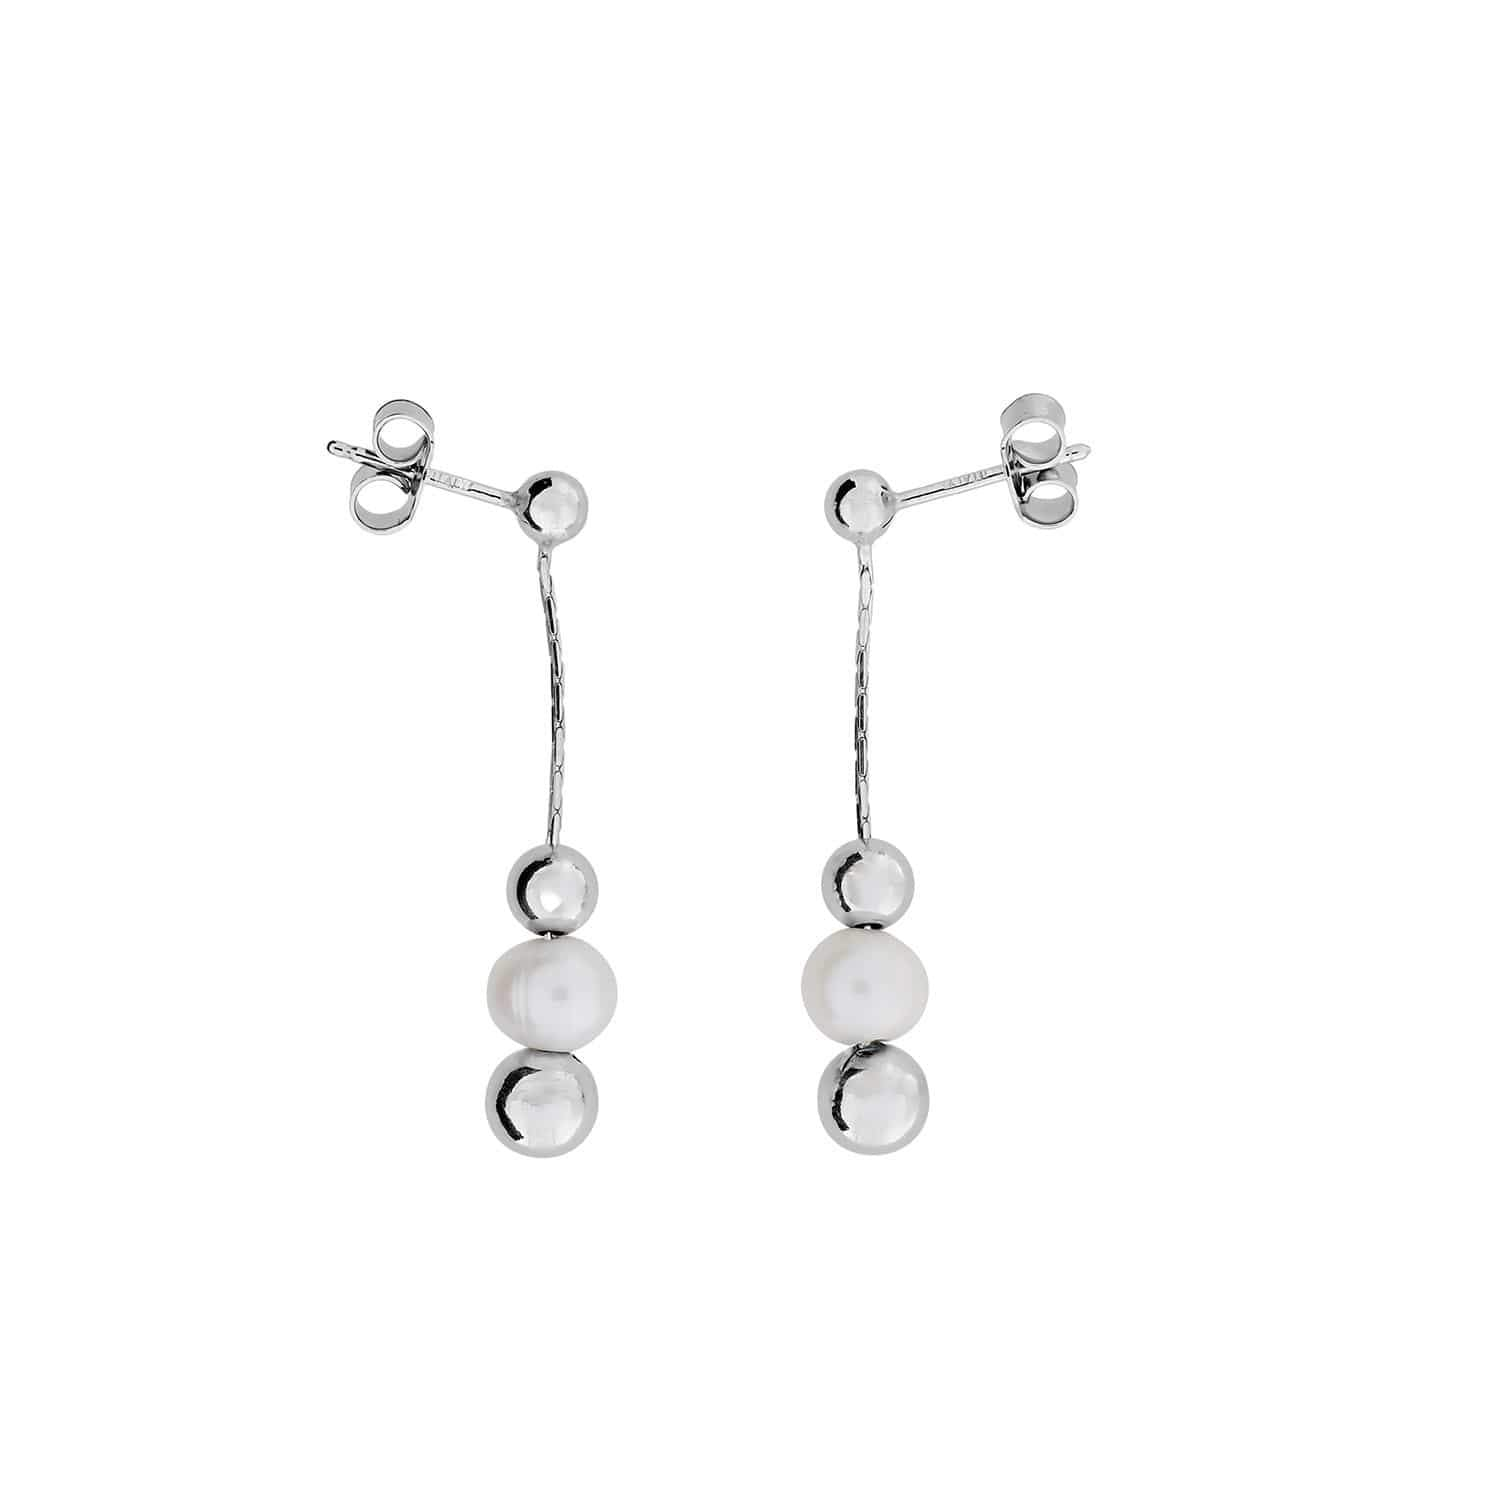 Silver Ball Earrings with Freshwater Pearl